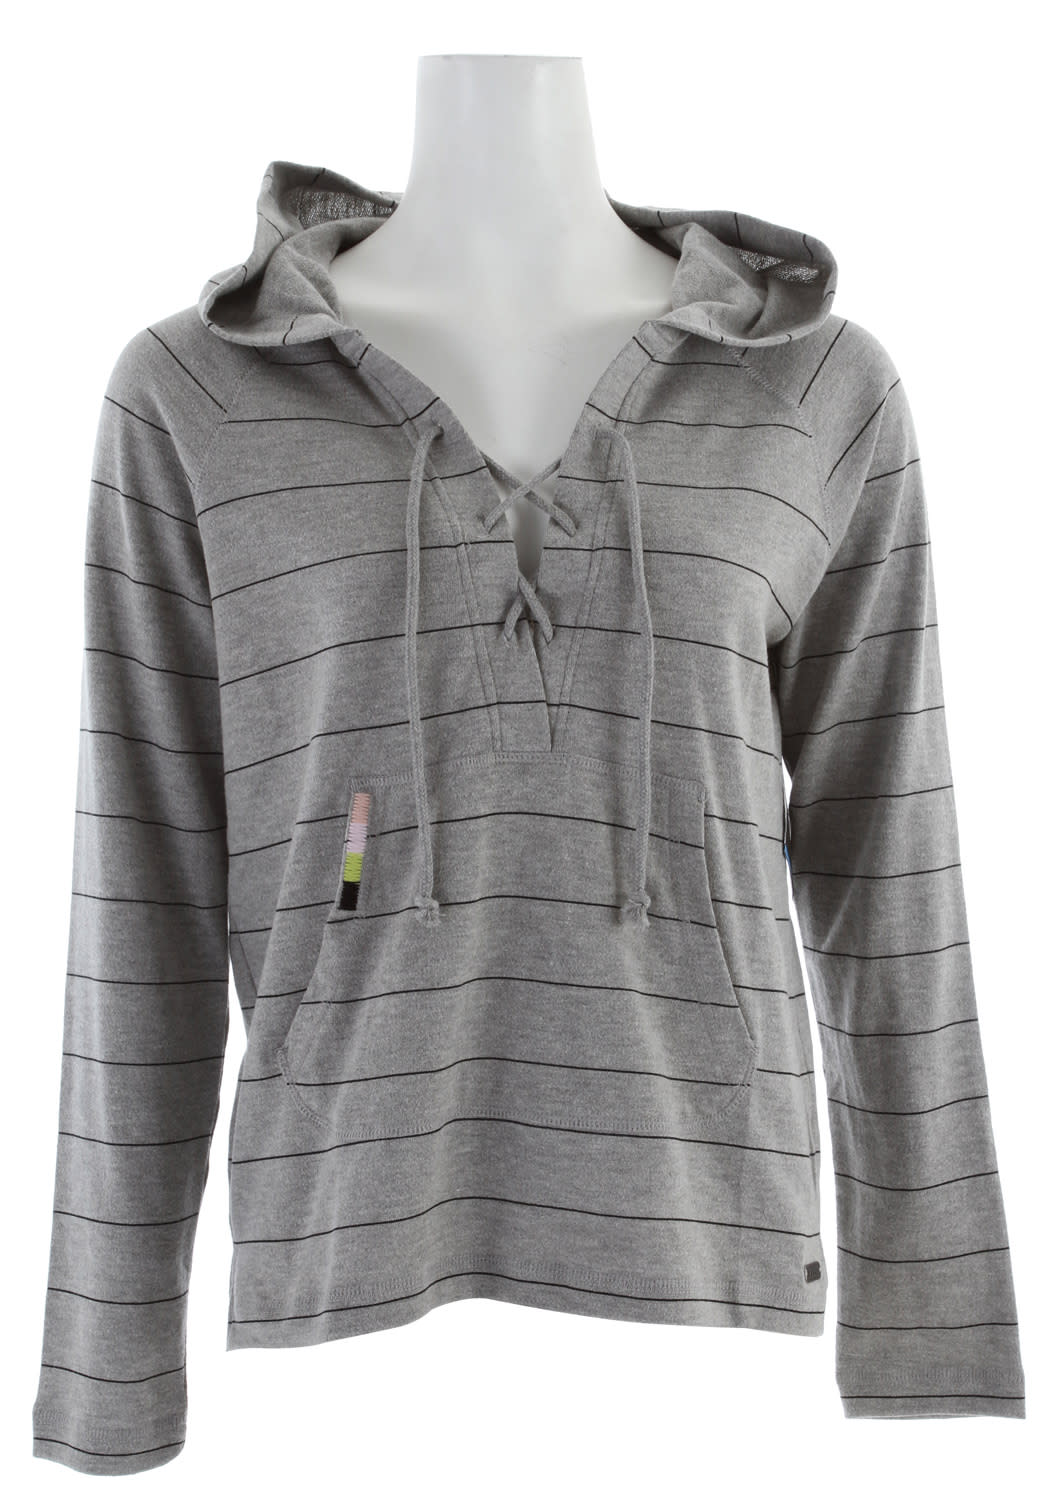 Shop for Volcom Desert Fleur Hoodie Heather Grey - Women's